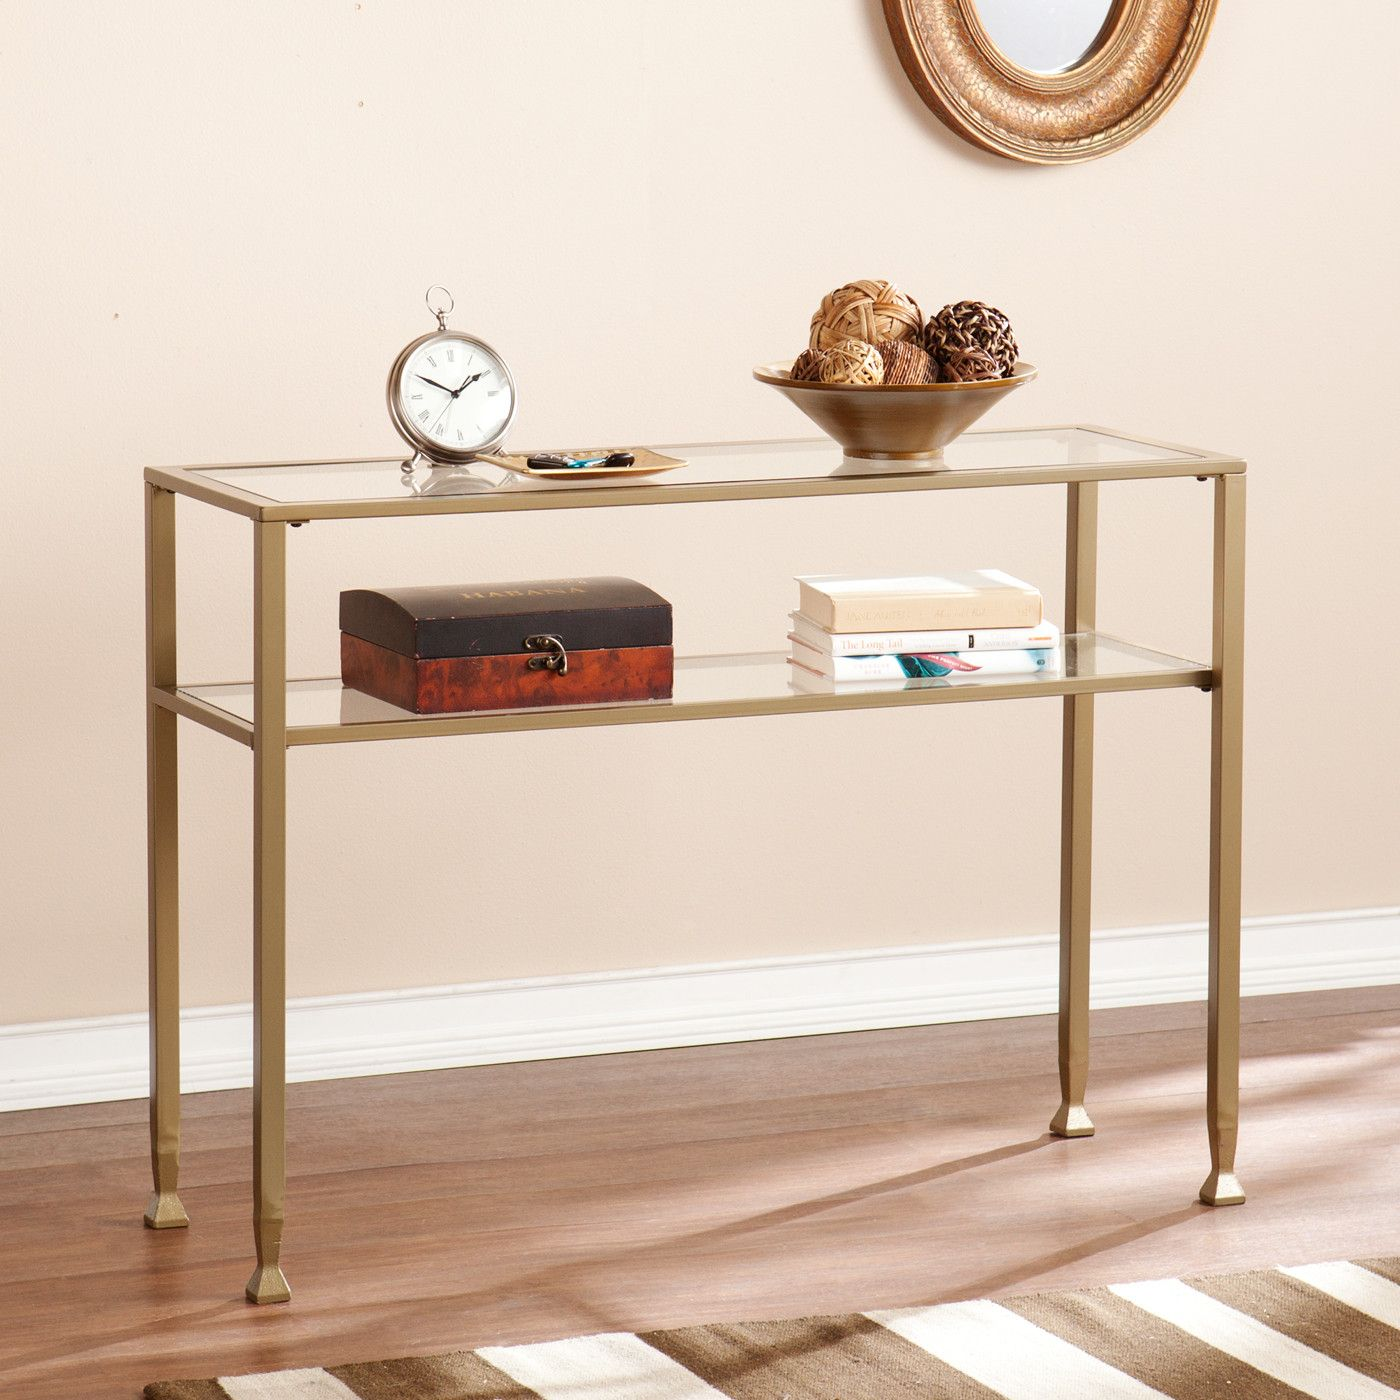 com table australia canada on console ideas a sydney hall unusual t contemporary walmart ikea modern and sale with for furniture drawers storage hack shelf uk narrow gumtree of tables white